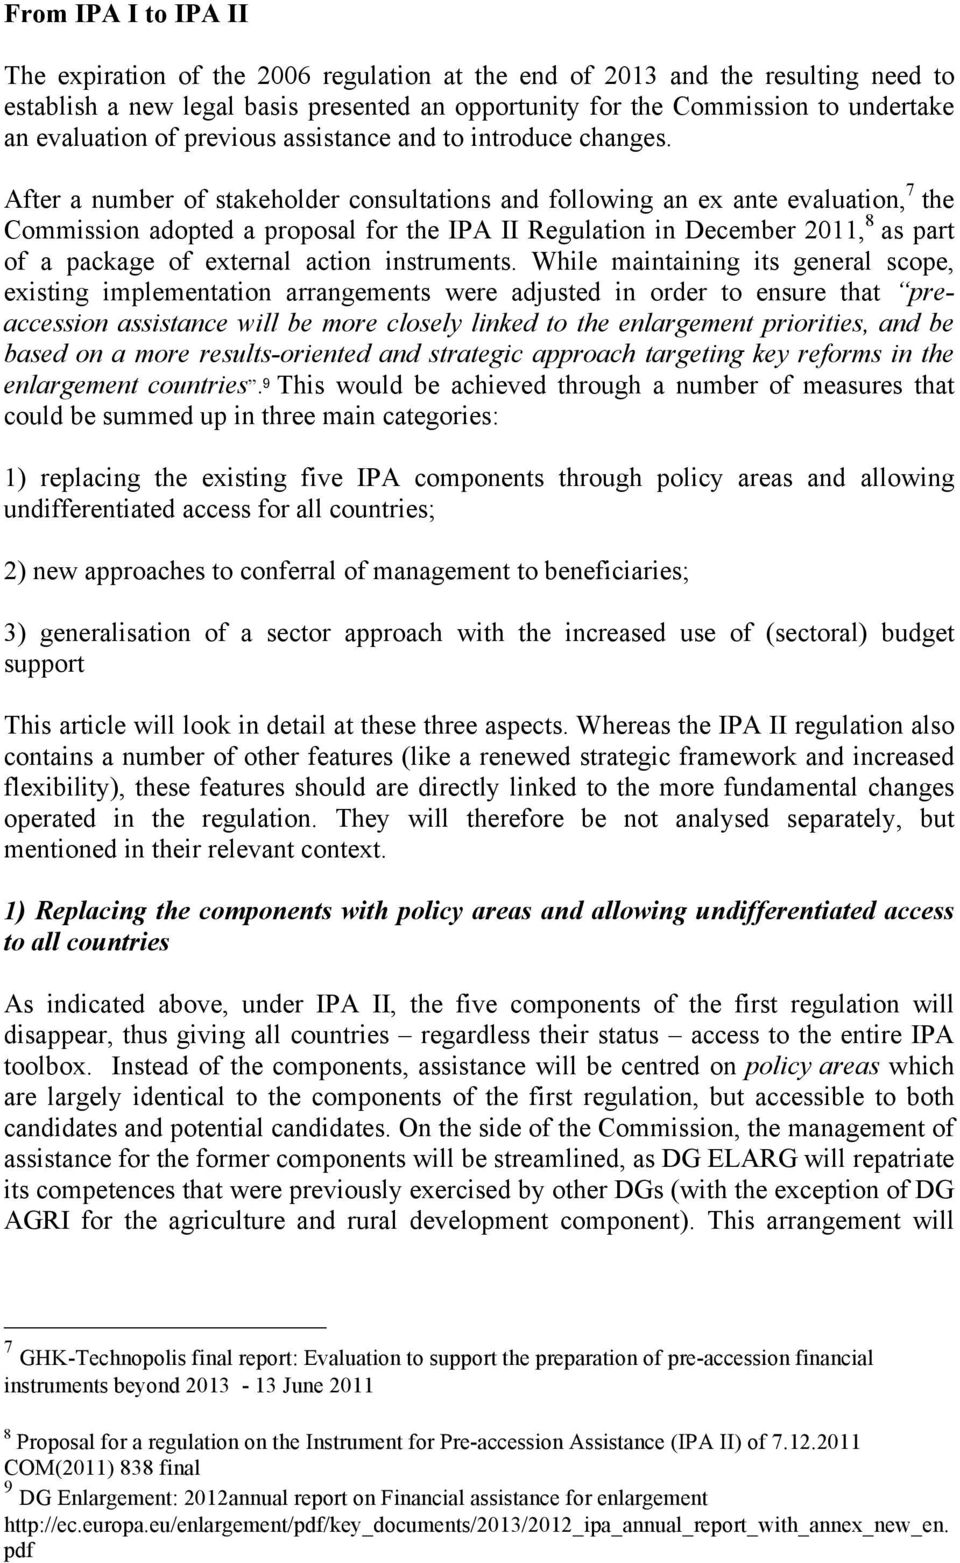 After a number of stakeholder consultations and following an ex ante evaluation, 7 the Commission adopted a proposal for the IPA II Regulation in December 2011, 8 as part of a package of external